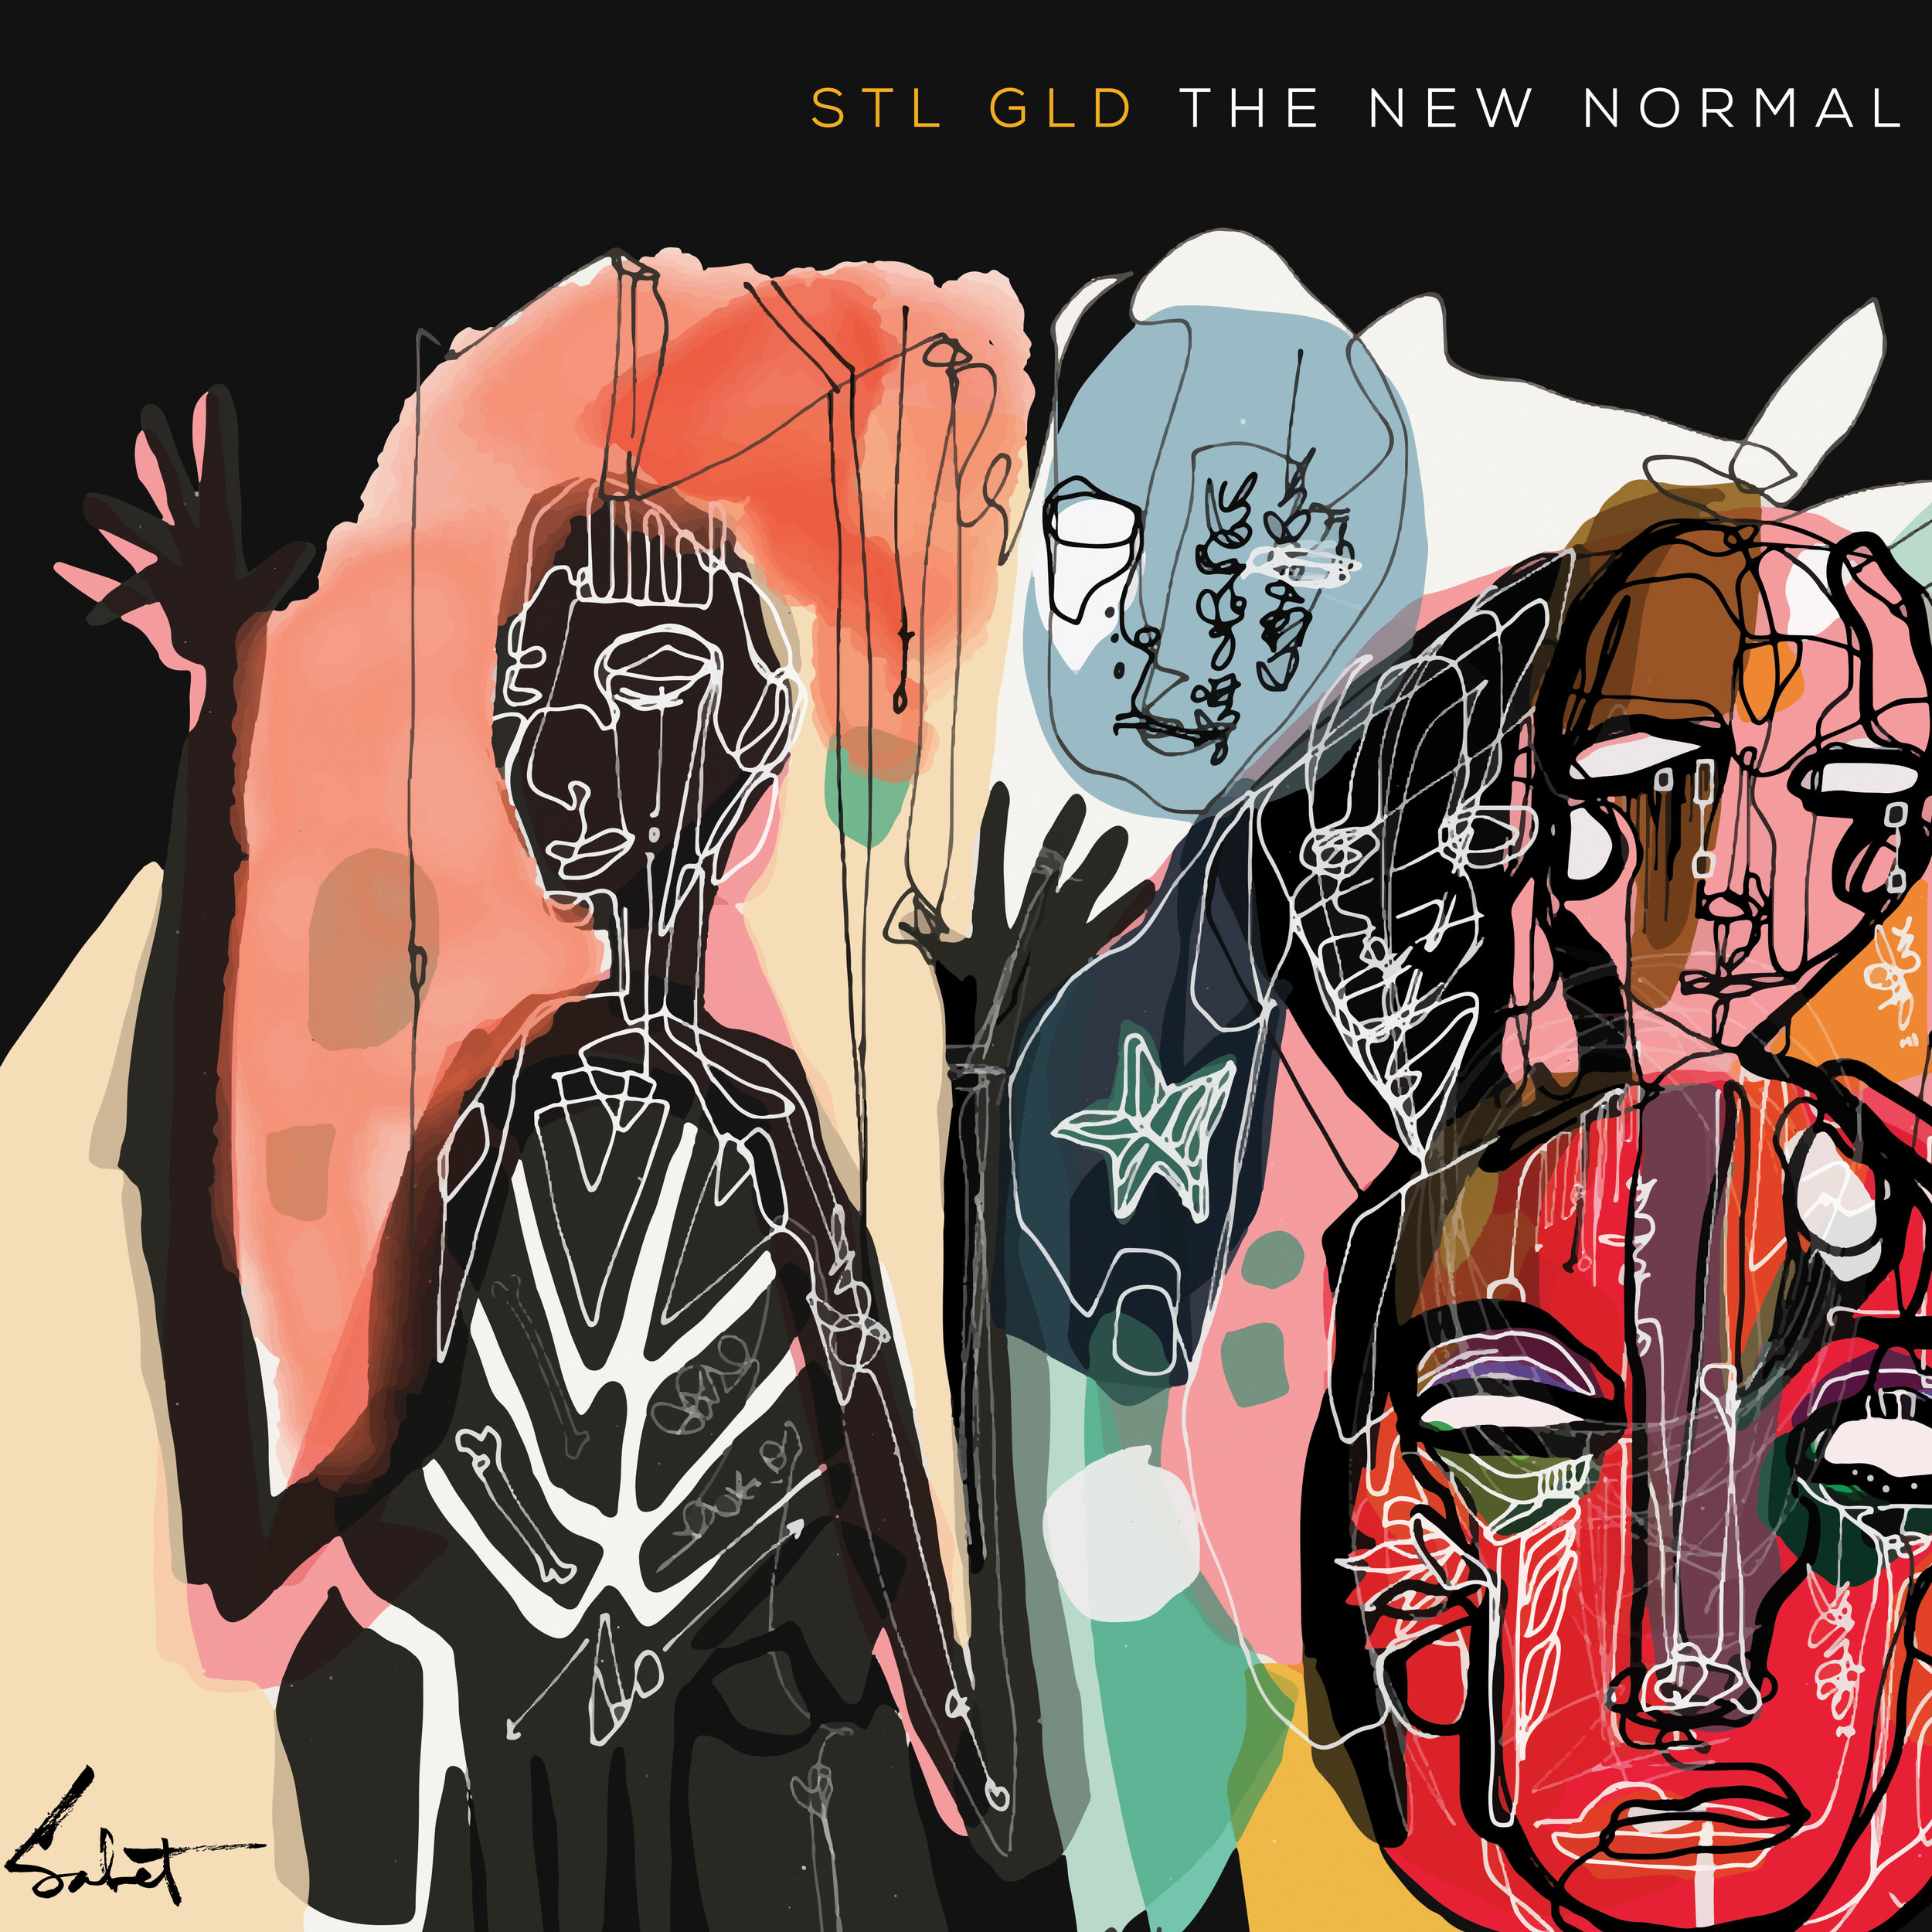 The New Normal (Avail 2.1.19)